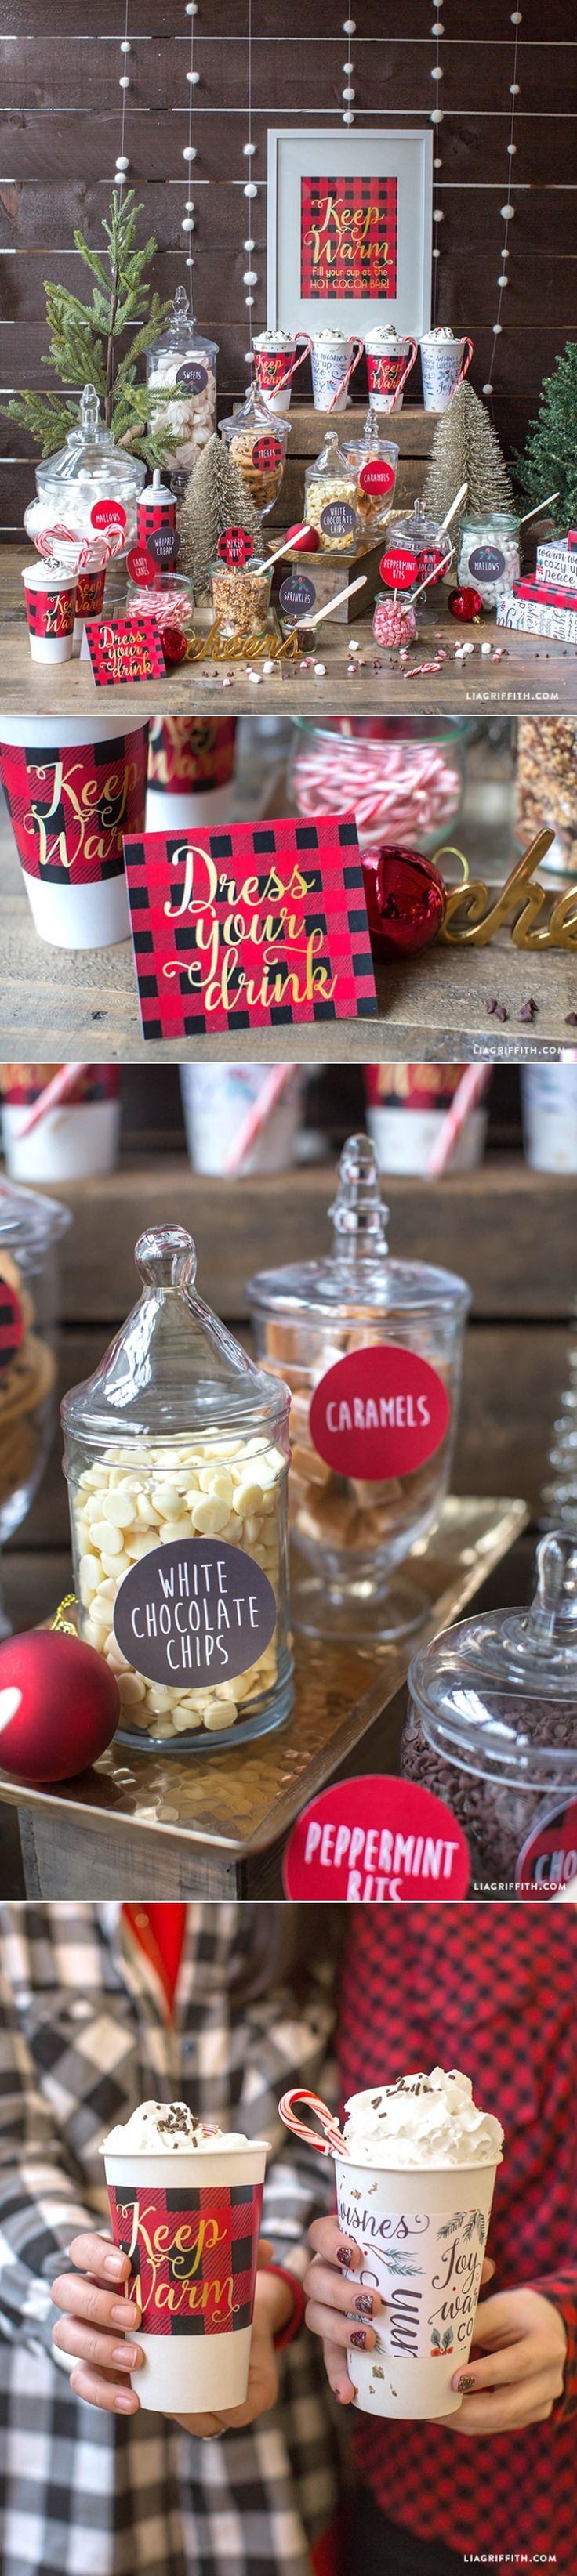 Winter bridal shower idea - hot cocoa bar with red, black and gold details {Courtesy of Lia Griffith}